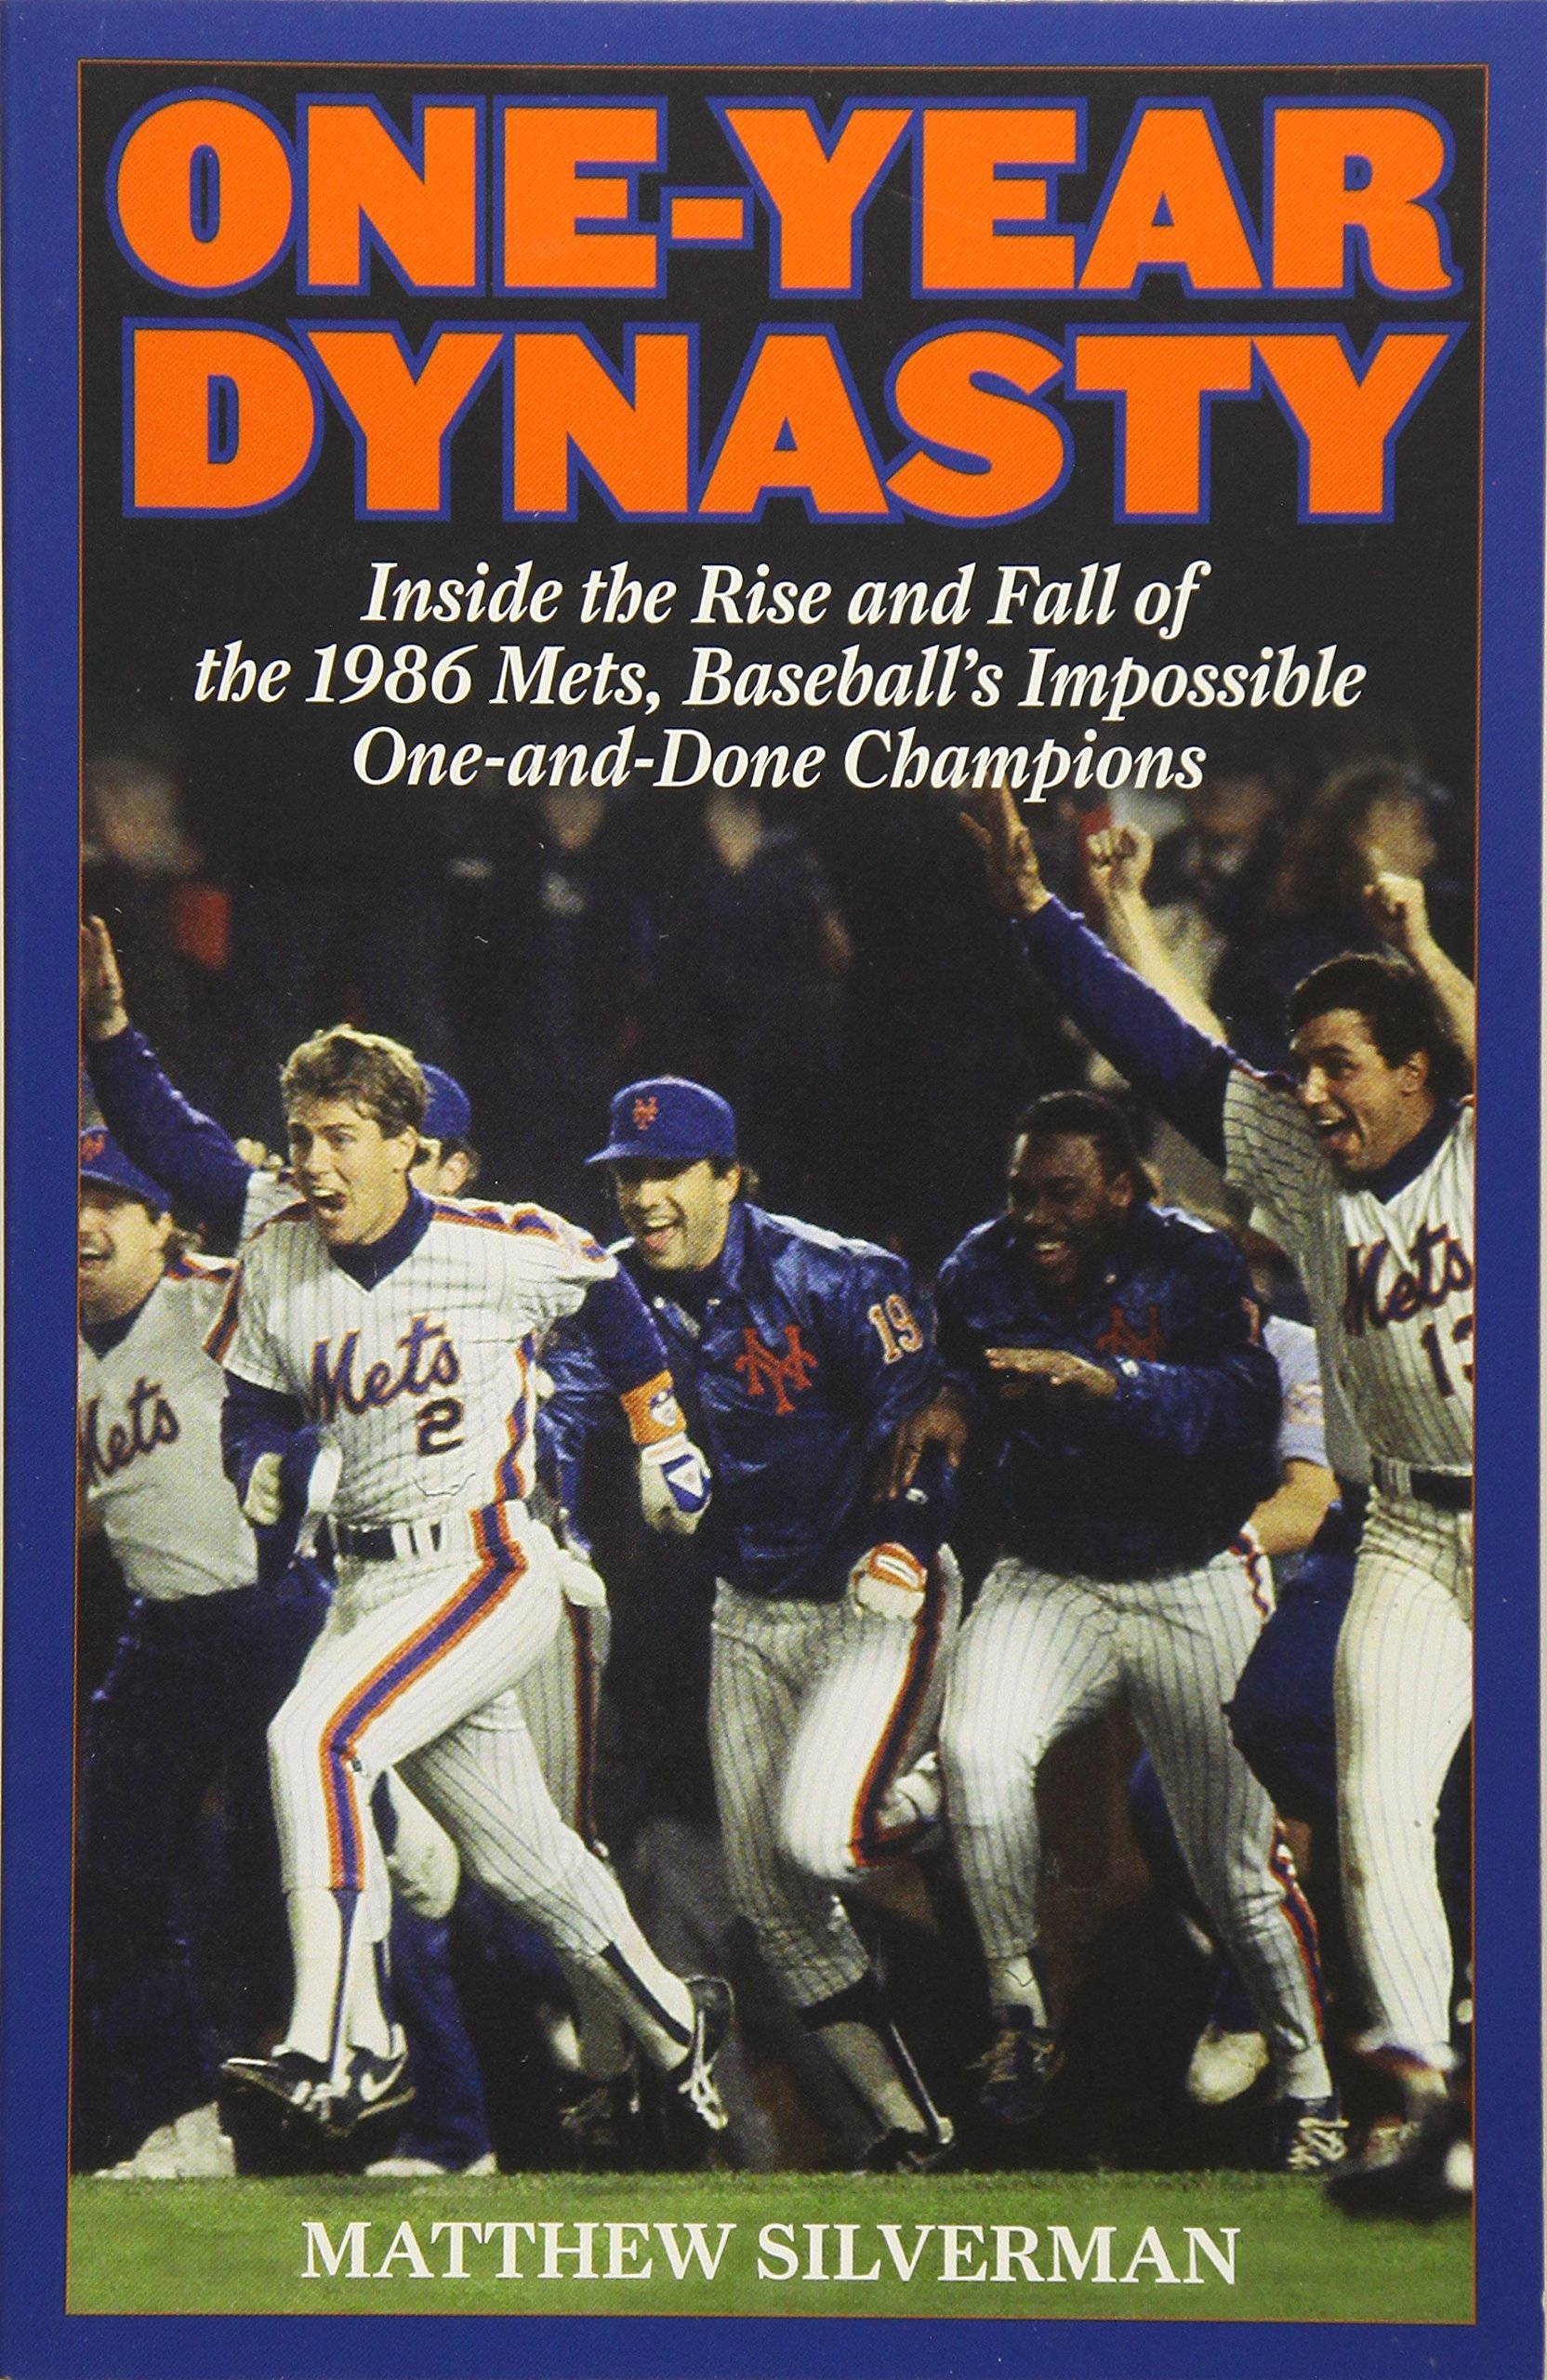 53d2bf44a One-Year Dynasty: Inside the Rise and Fall of the 1986 Mets, Baseball's  Impossible One-and-Done Champions: Matthew Silverman: 9781493009091: Amazon.com:  ...